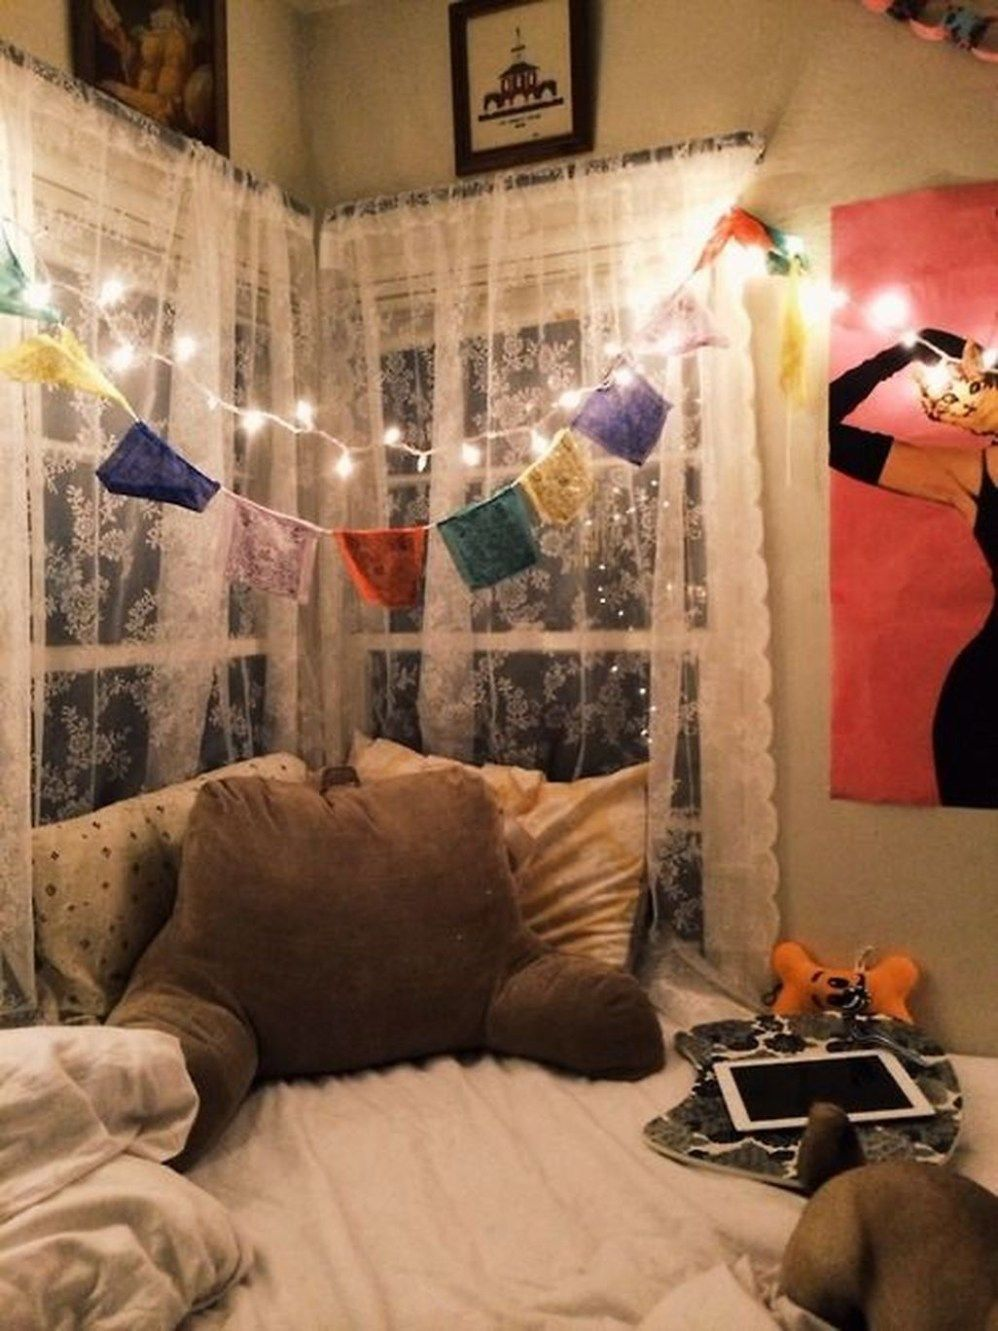 50 totally smart diy college apartment decoration ideas on on diy home decor on a budget apartment ideas id=58005